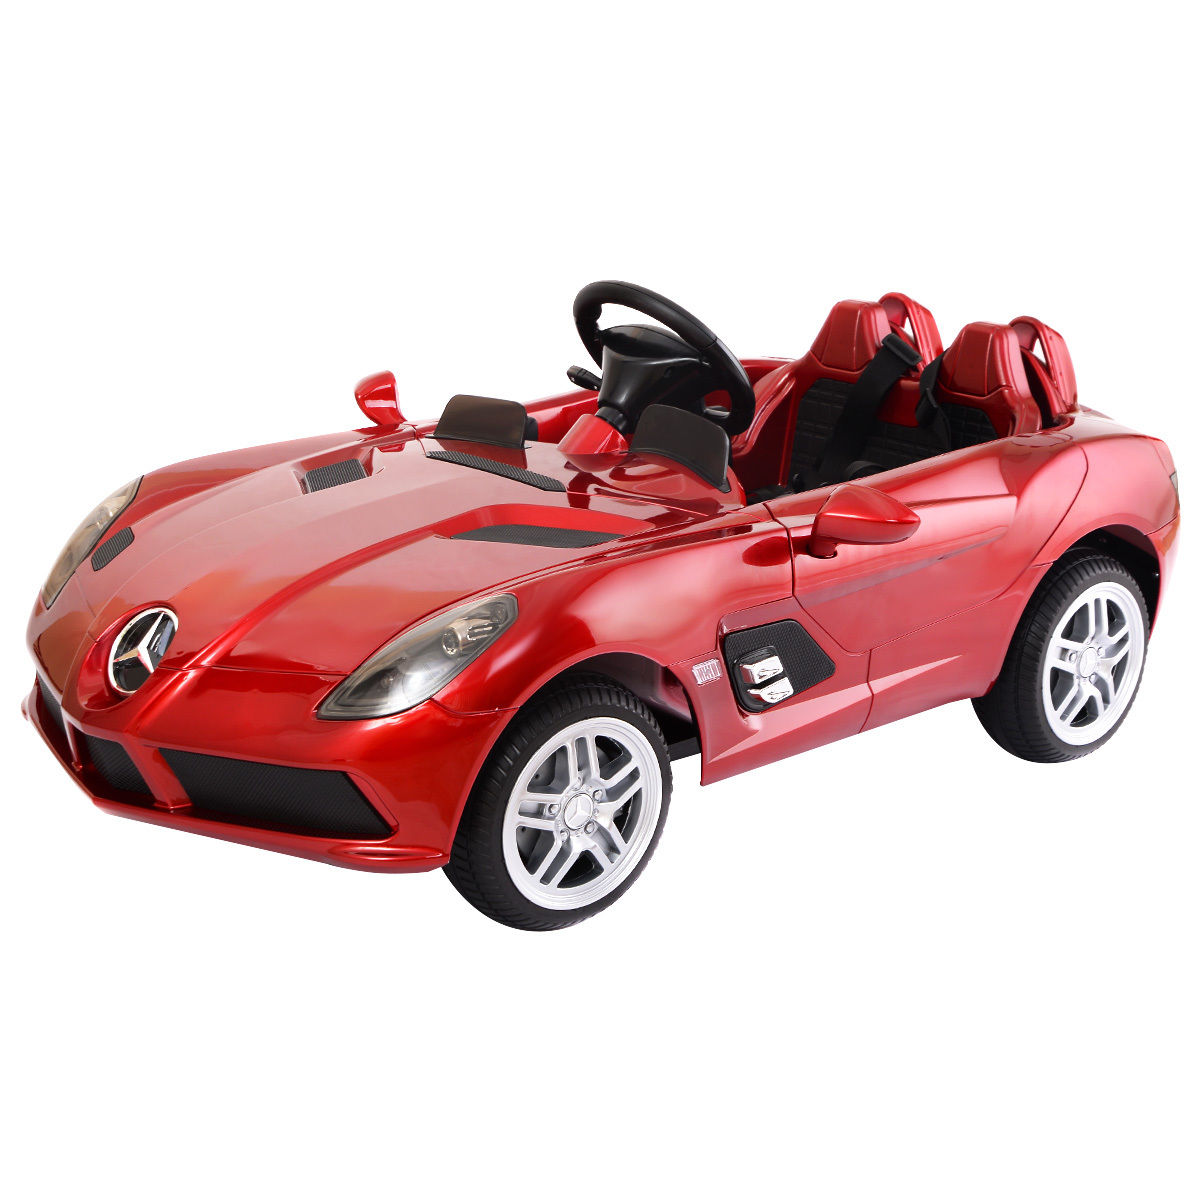 Costway Mercedes Benz Z199 12V Electric Kids Ride On Car Licensed MP3 RC Remote Control by Costway